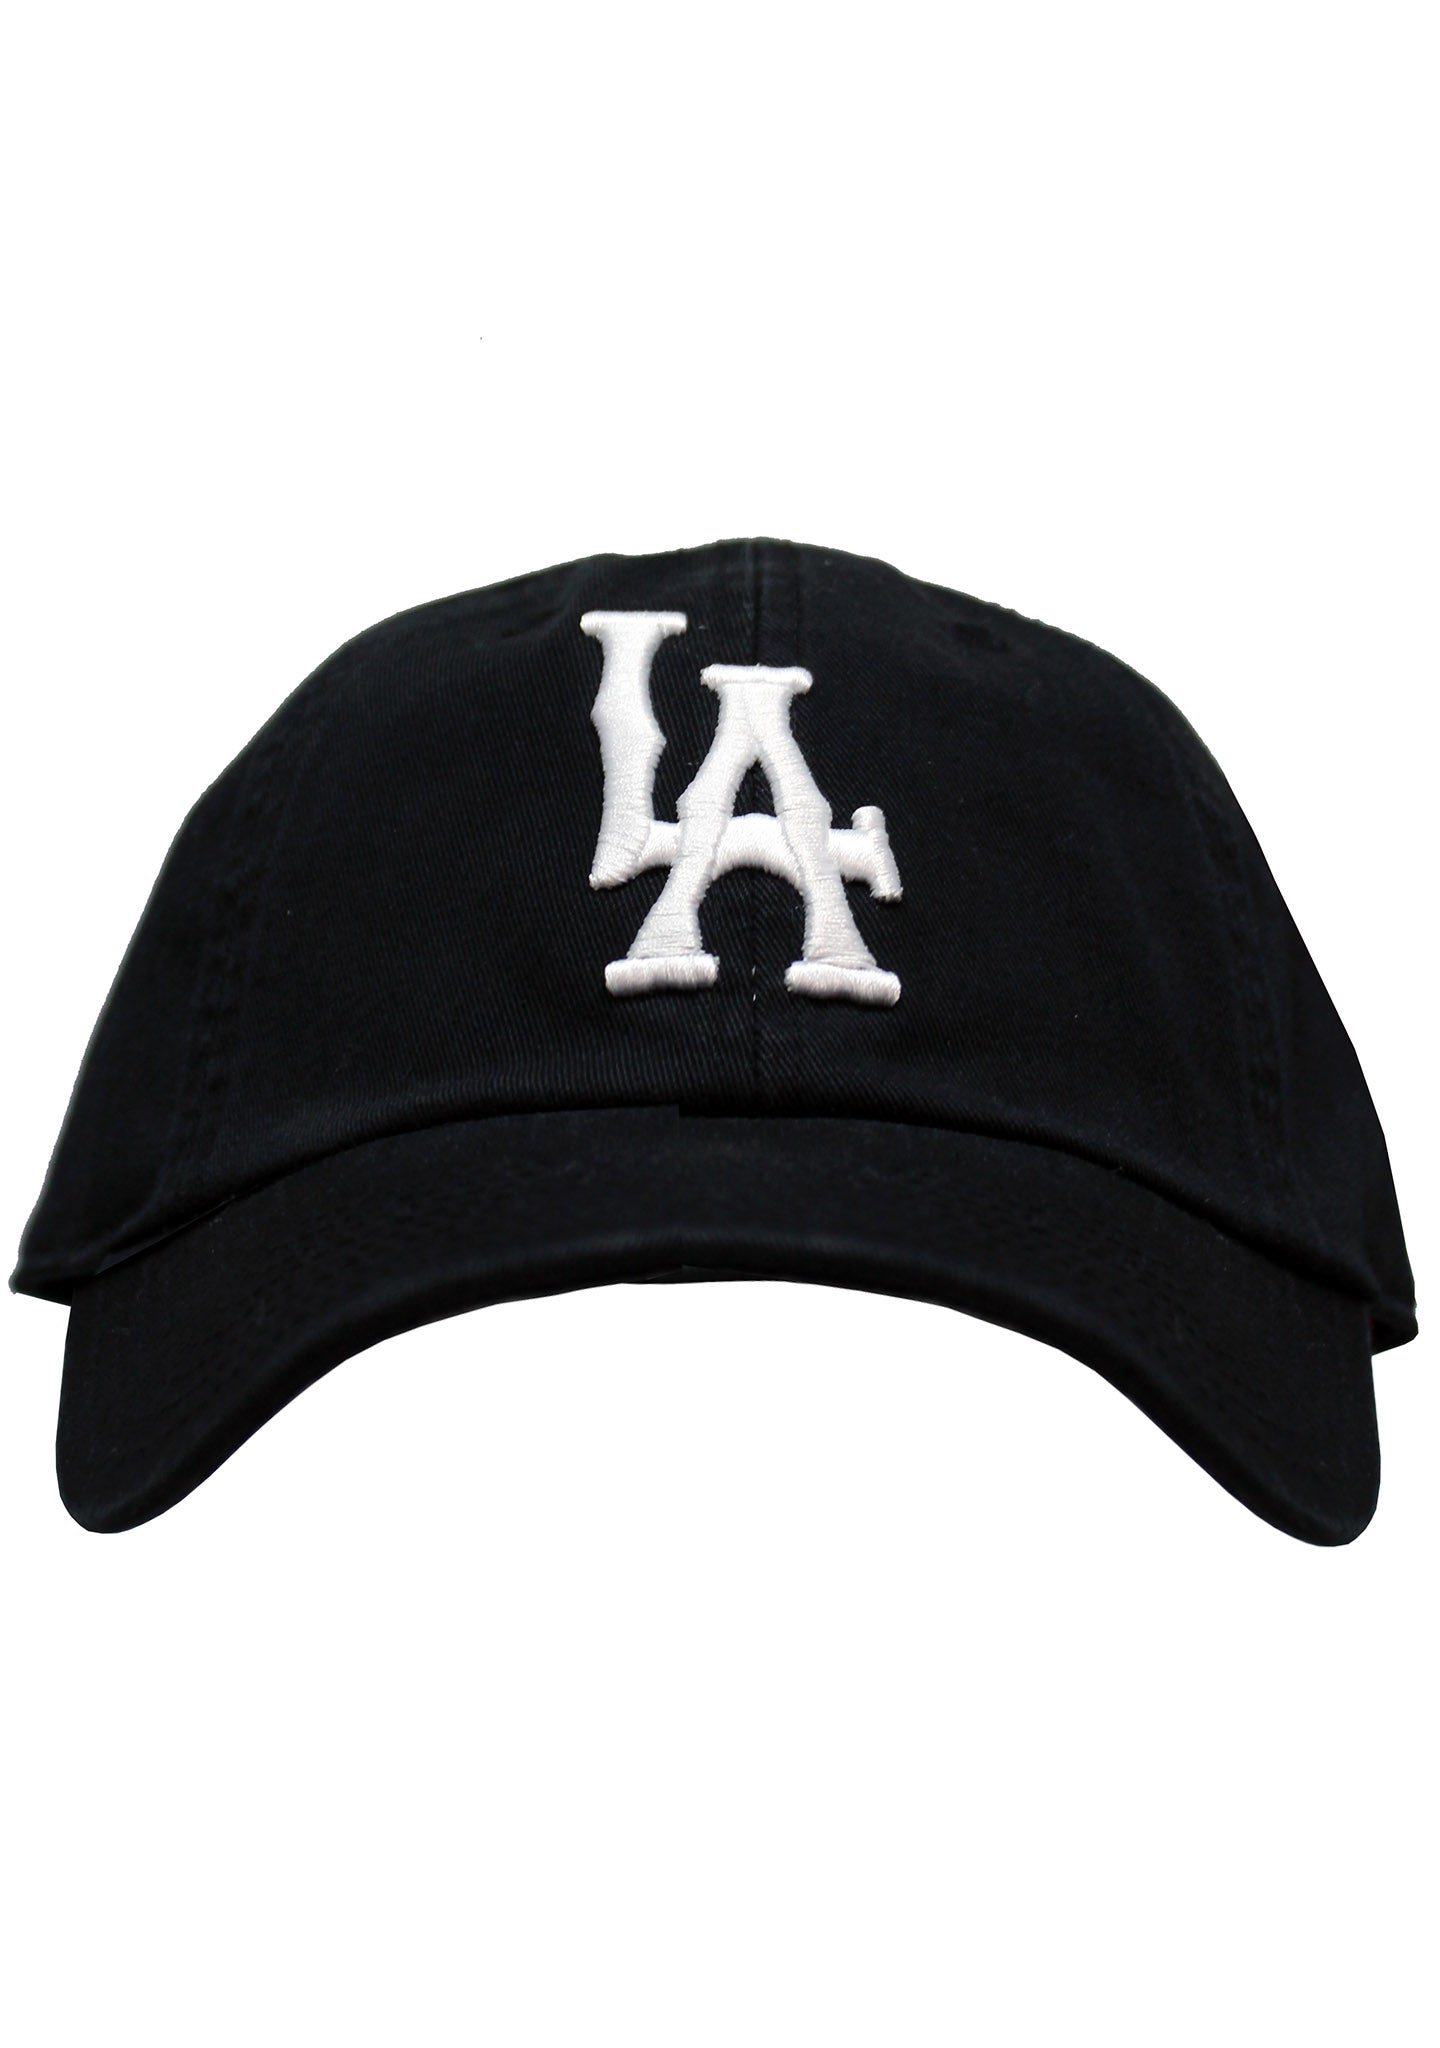 Los Angeles Bones Baseball Hat